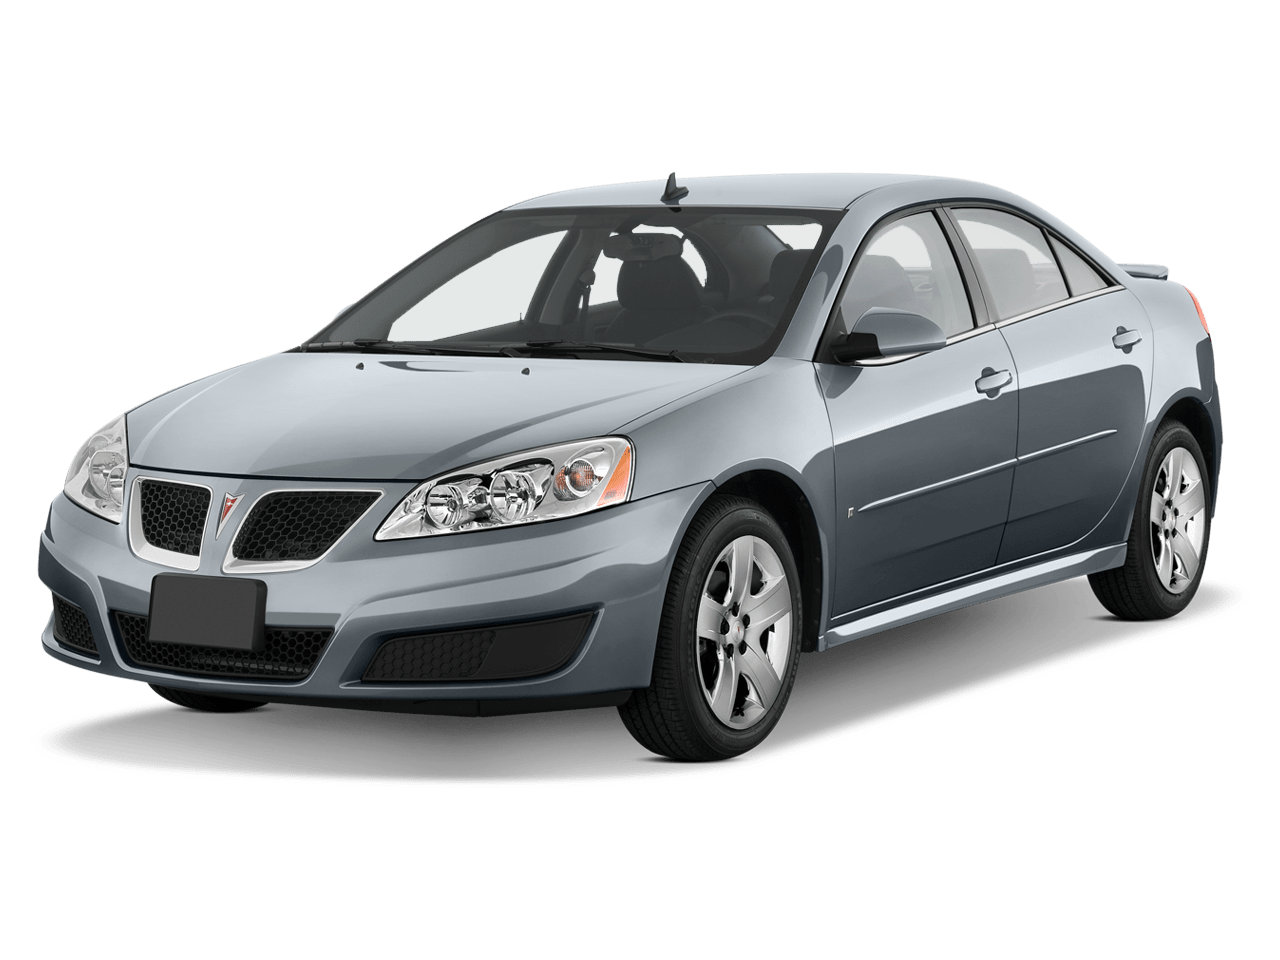 medium resolution of 2009 pontiac g6 reviews and rating motortrend pontiac g6 convertible power window wire diagrams